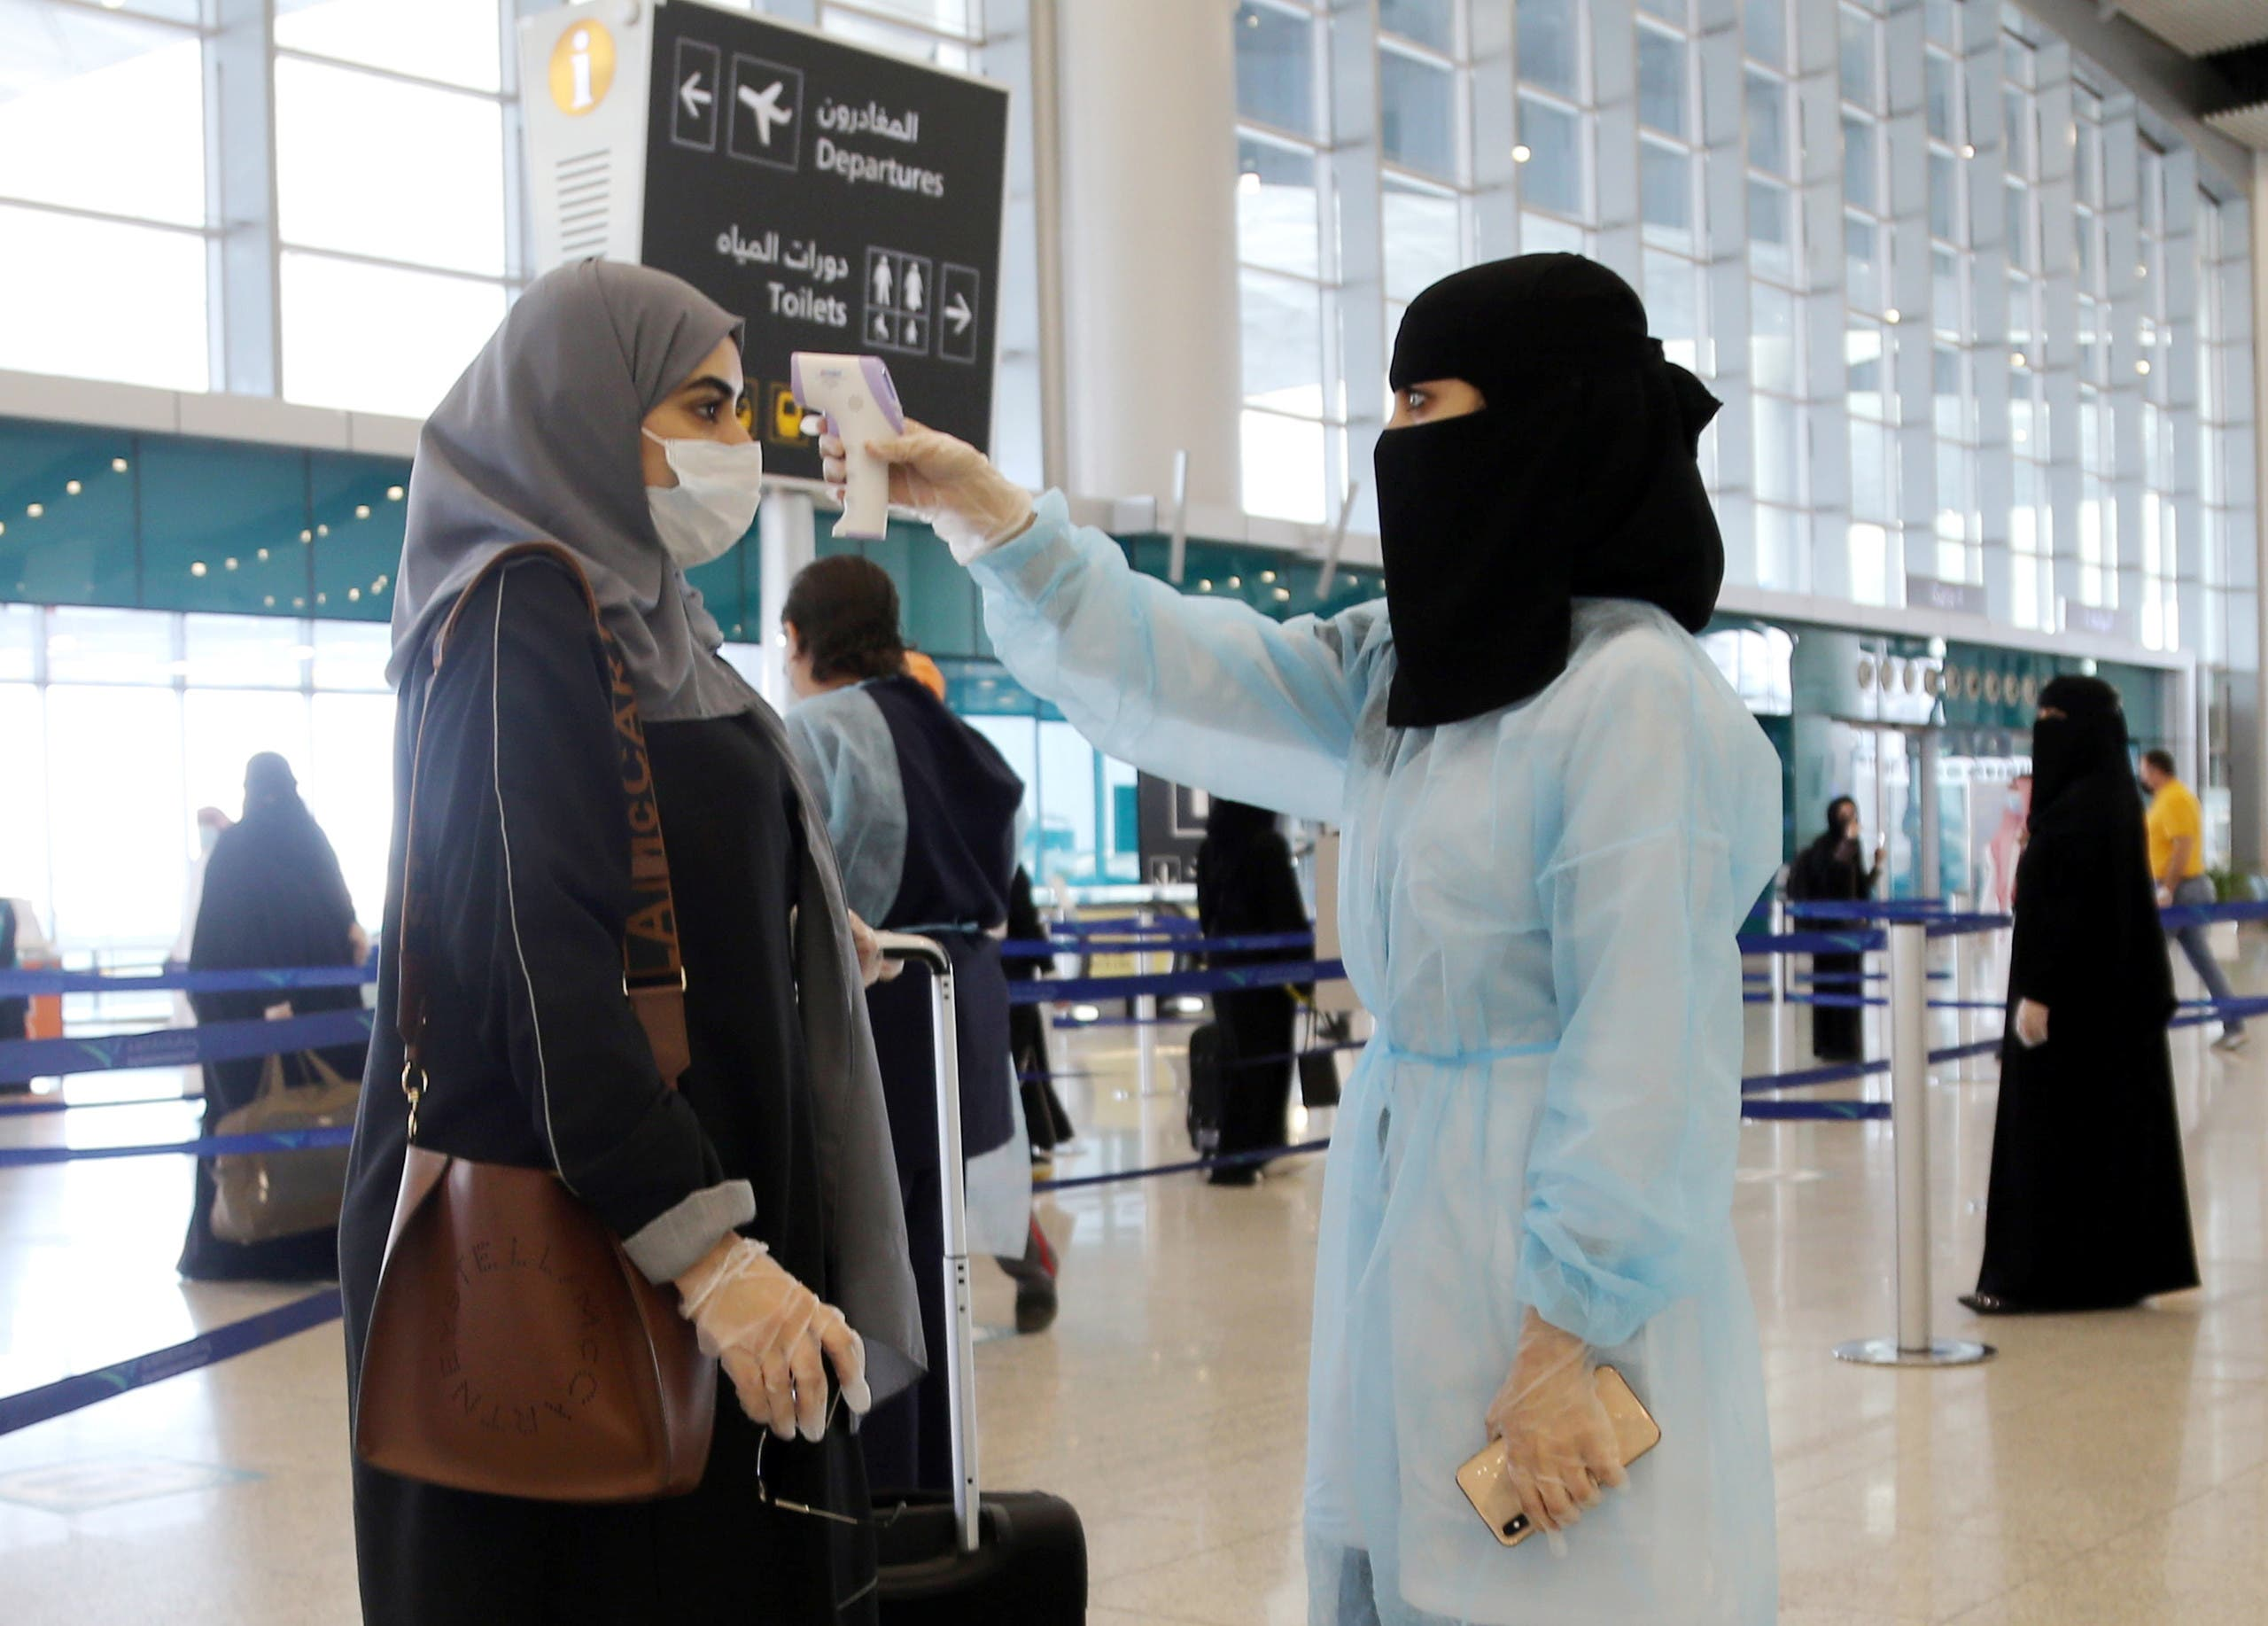 A security woman checks the temperature of a woman at Riyadh International Airport, after Saudi Arabia reopened domestic flights, following the outbreak of the coronavirus in Riyadh. (File photo: Reuters)